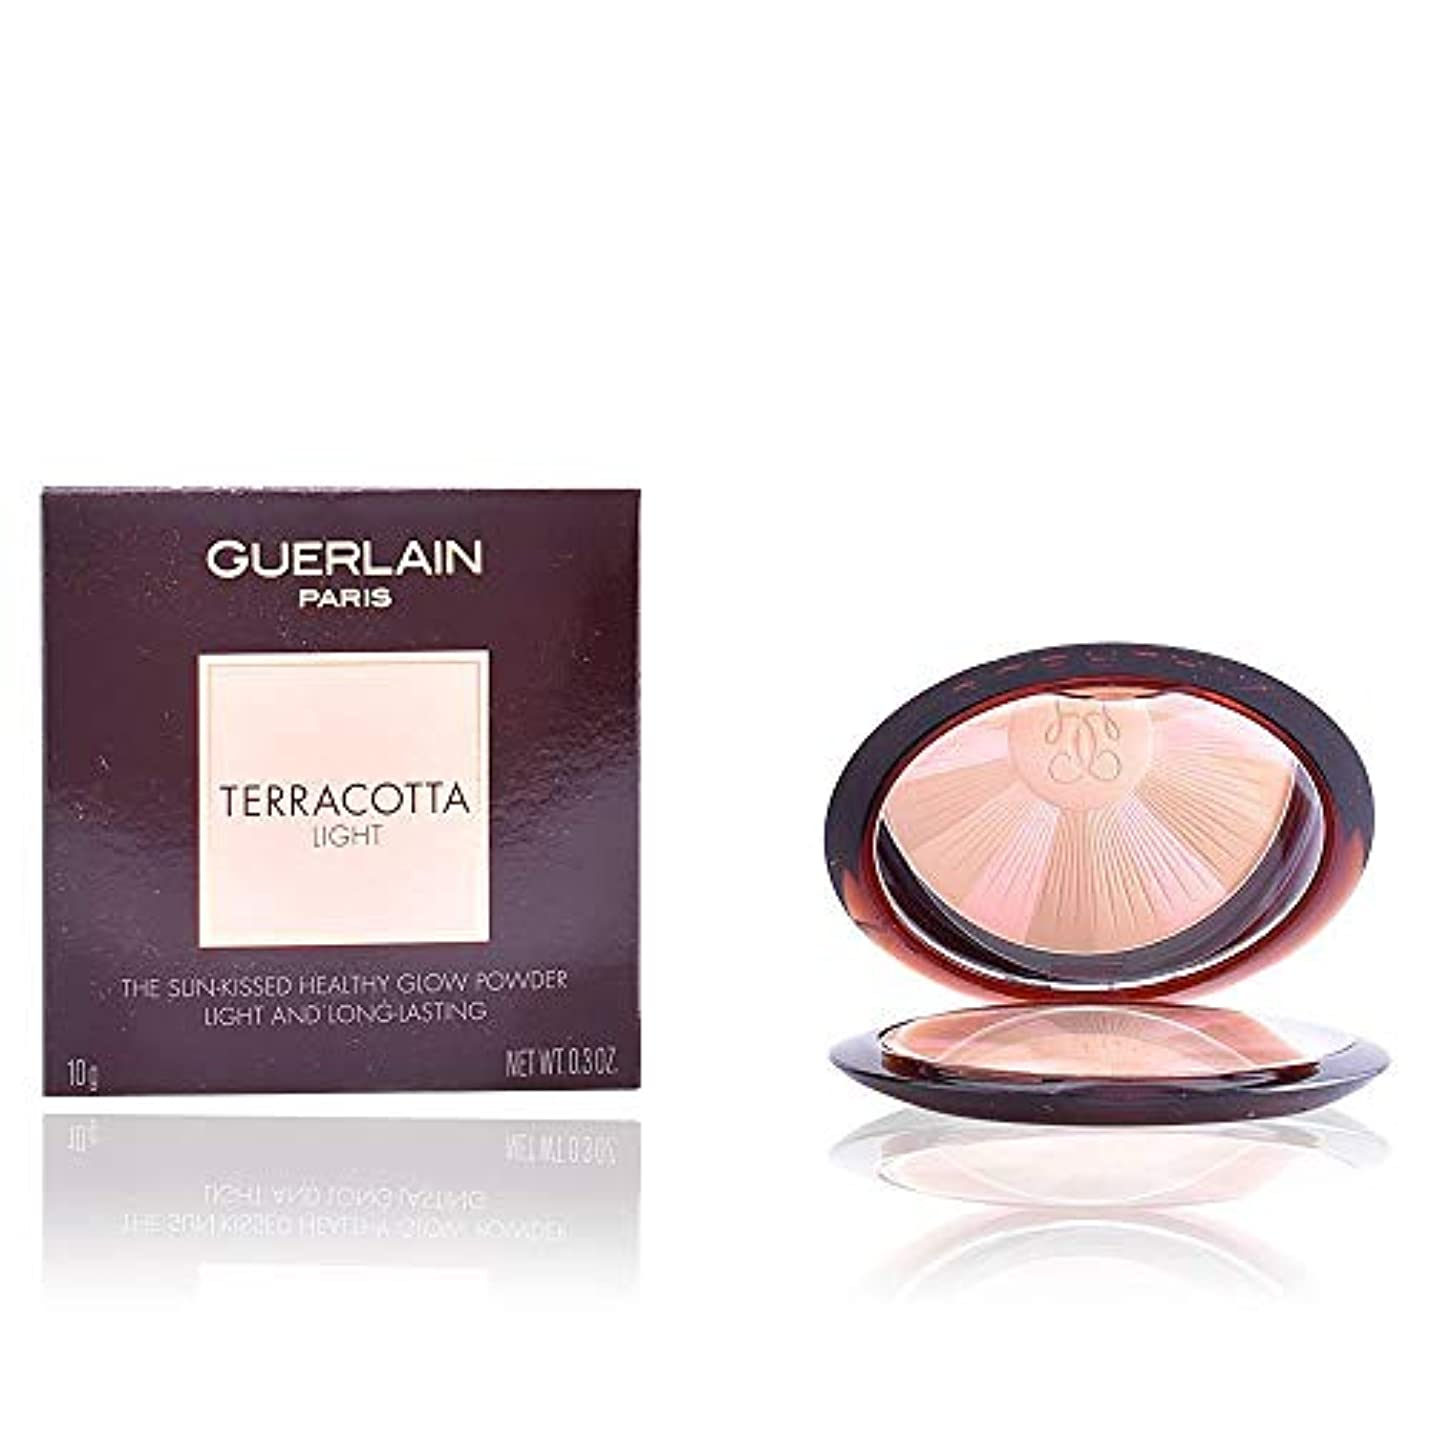 ドキドキ佐賀むさぼり食うゲラン Terracotta Light The Sun Kissed Healthy Glow Powder - # 00 Light Cool 10g/0.3oz並行輸入品